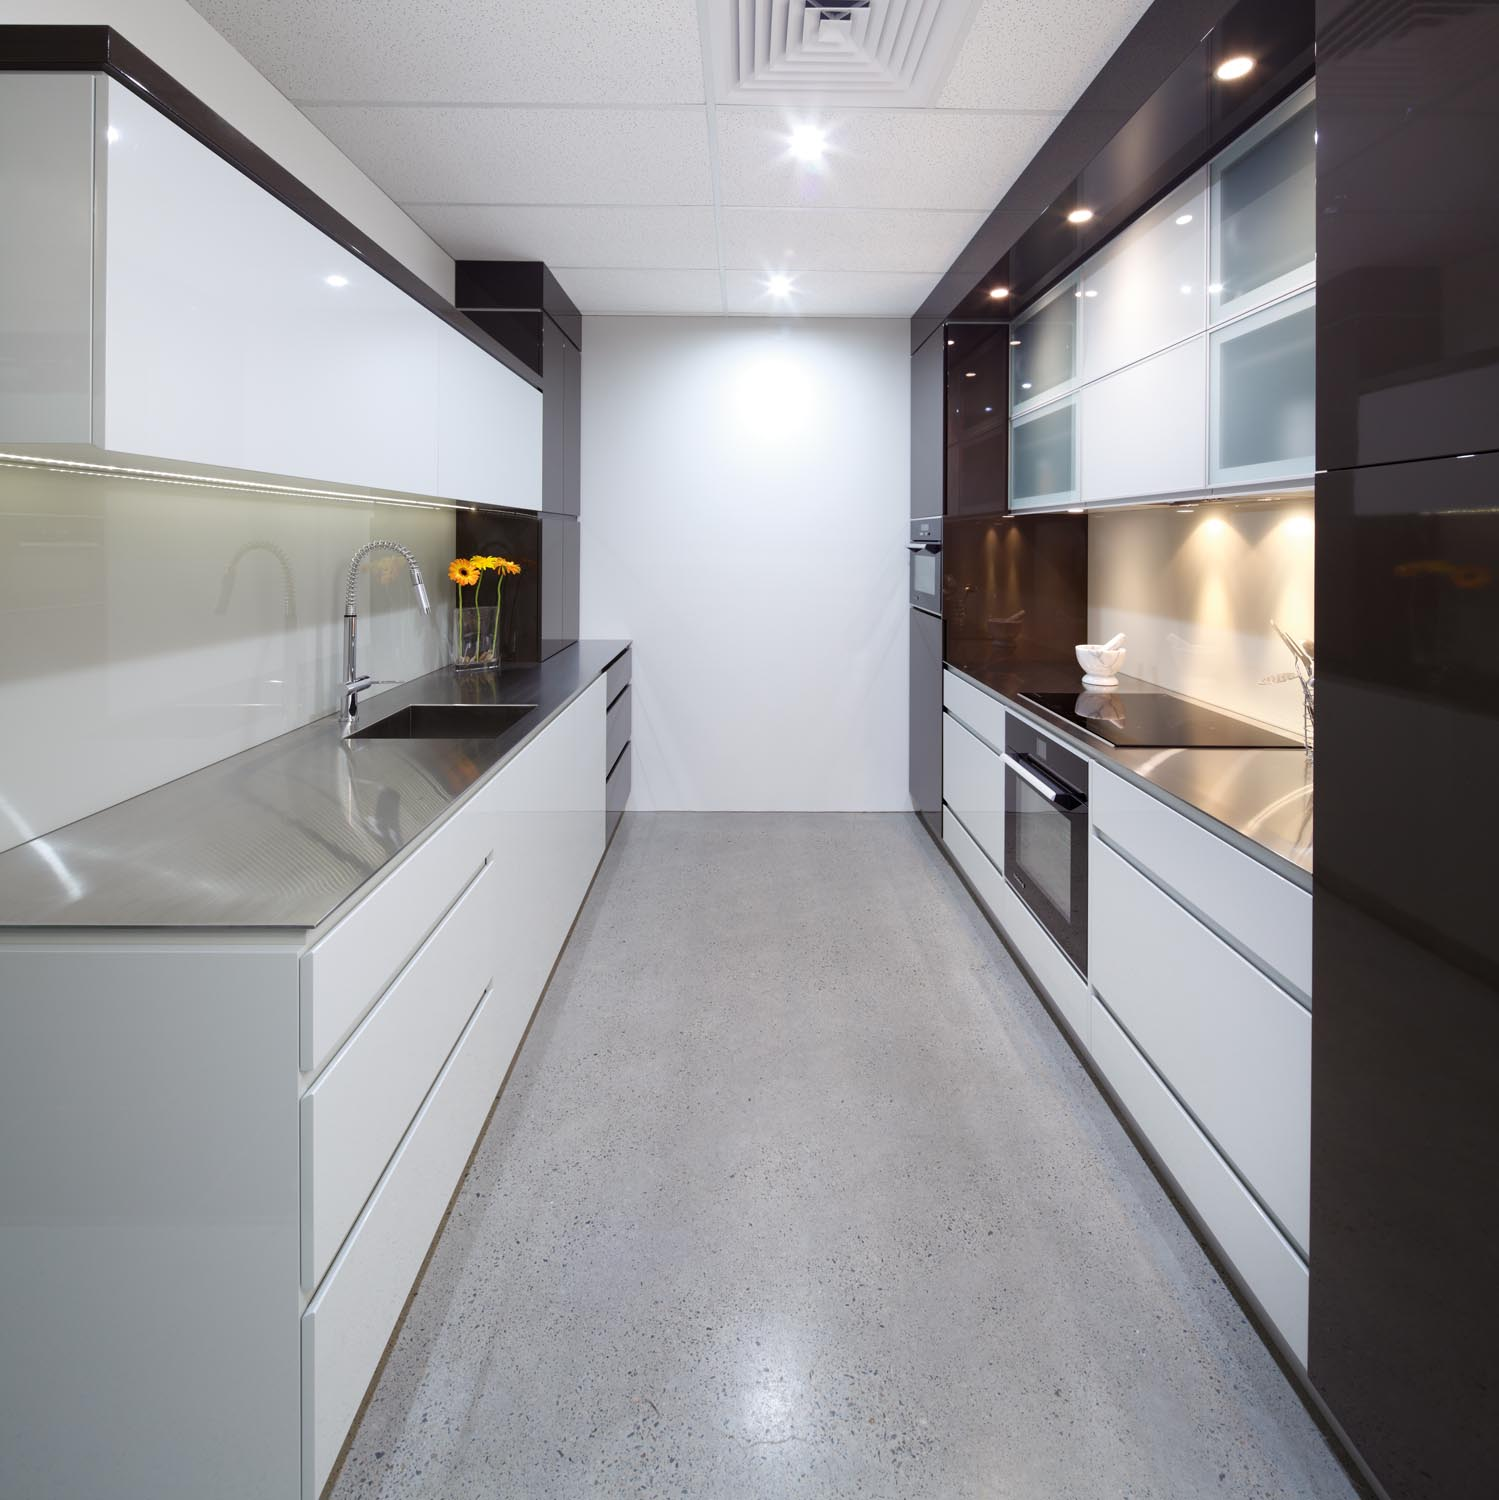 SHOWROOM PROFILE: Exquisite kitchens, bathrooms and custom joineries by Attard's Kitchens & Cabinetry